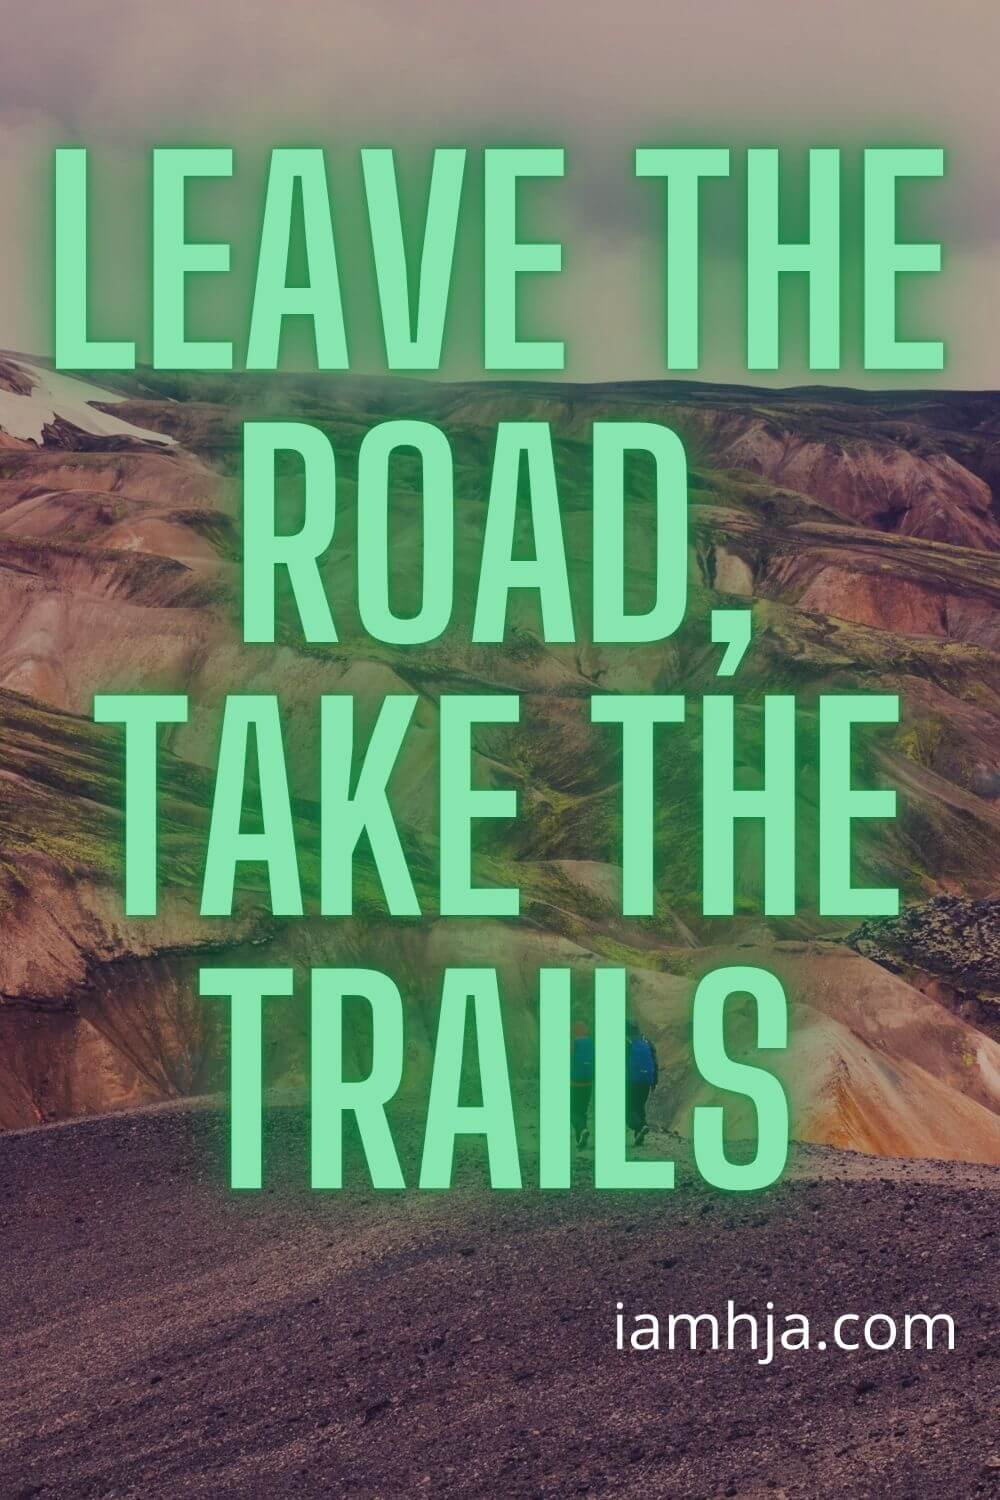 Leave the road, take the trails.